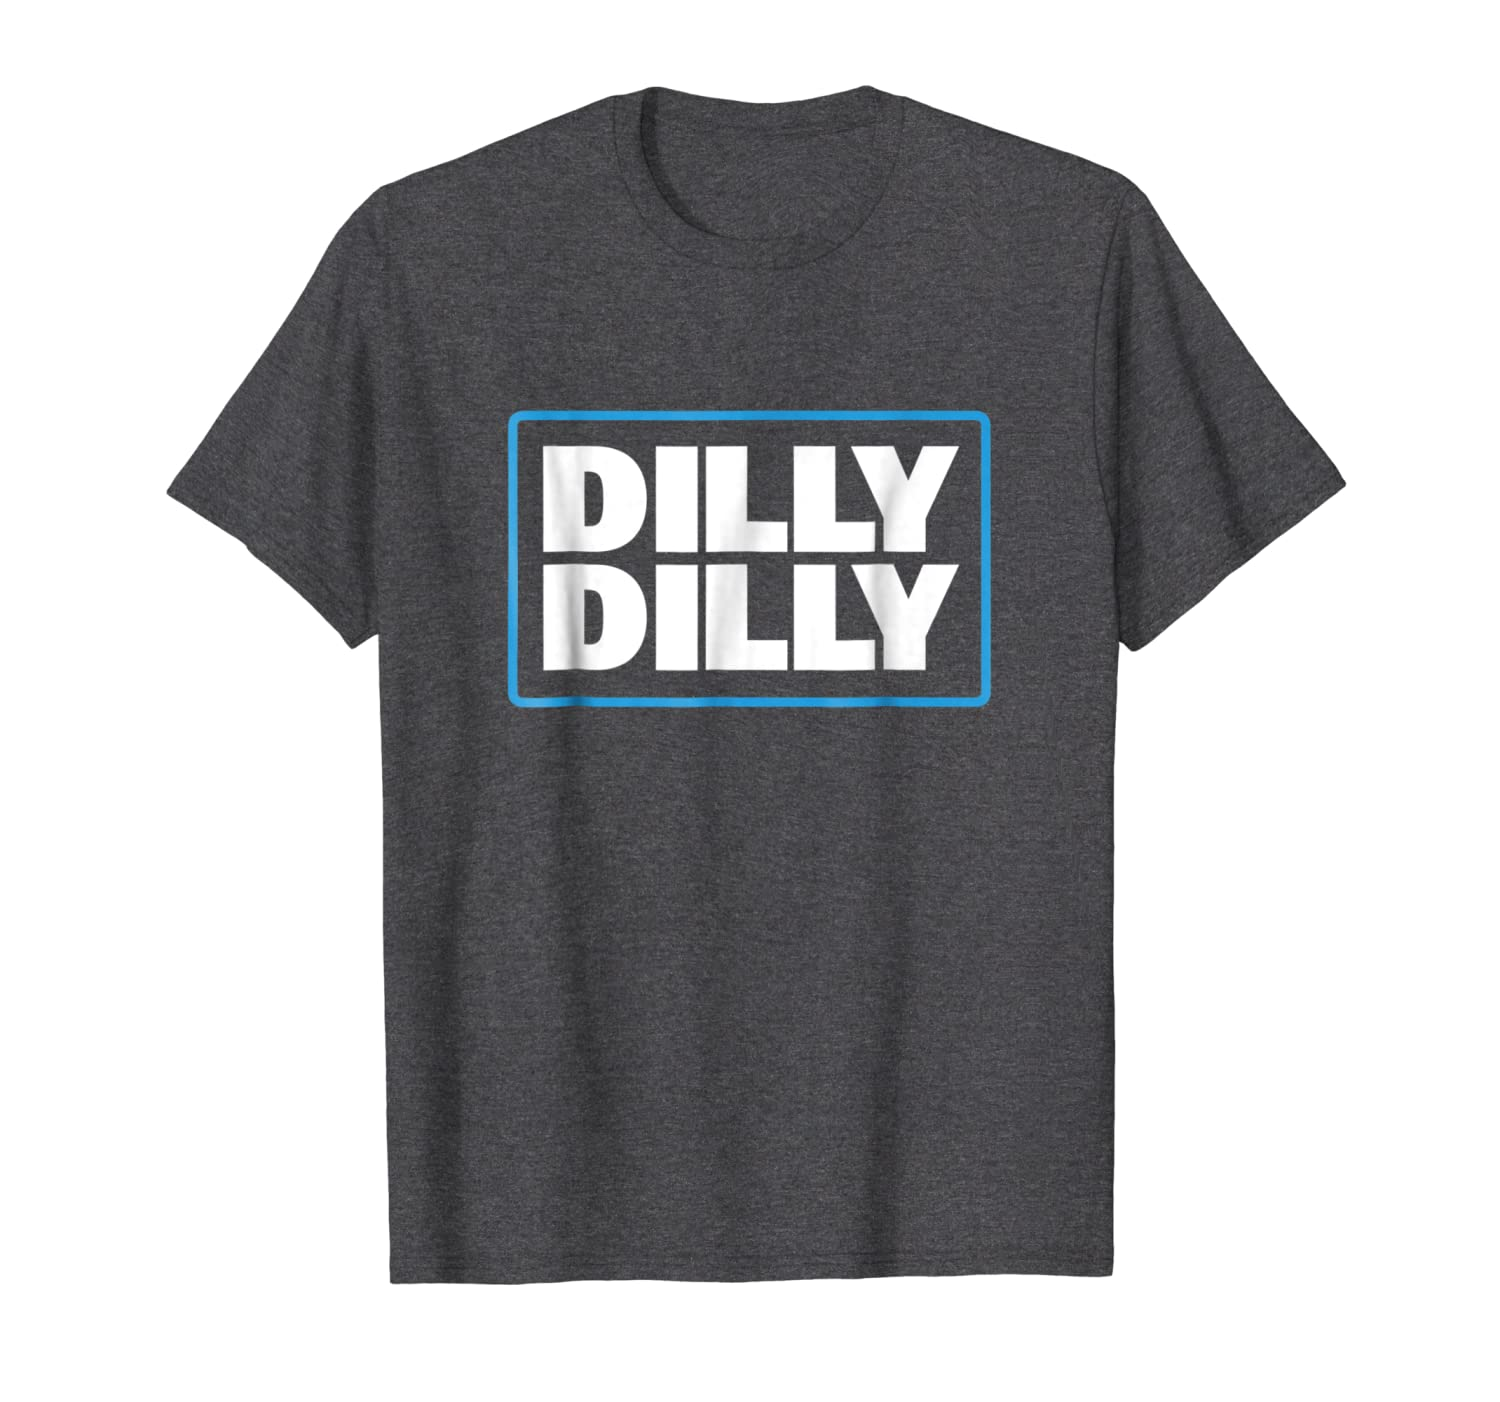 99ef1d395dae0 Amazon.com: Bud Light Official Dilly Dilly T-Shirt: Clothing